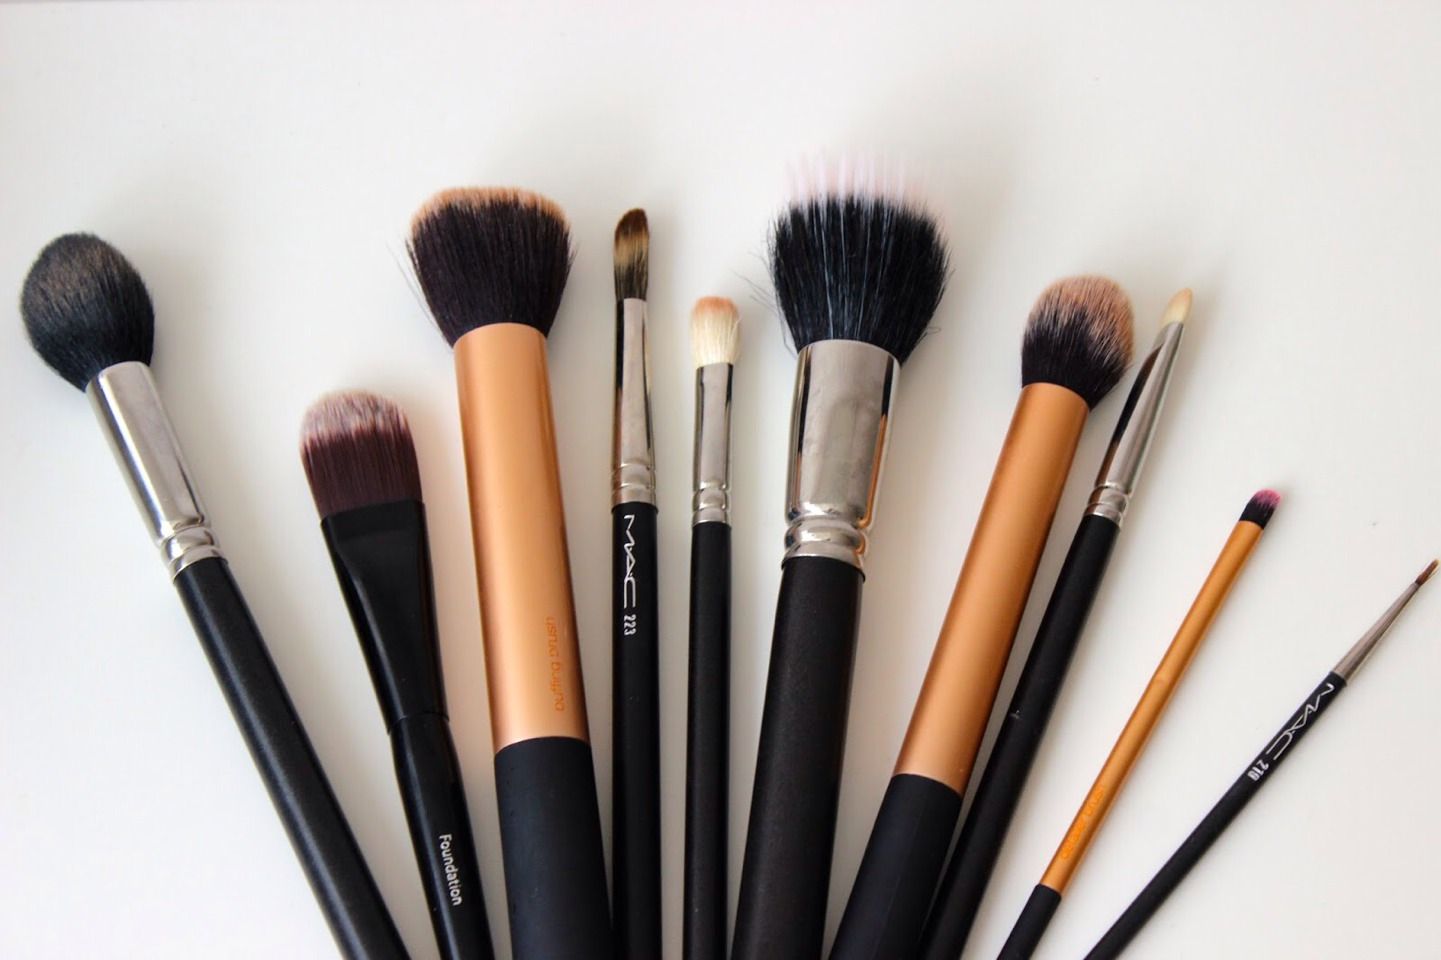 Keep your brushes clean!  Do this by washing them with a drop of shampoo, and rinsing under warm water, until the water runs clean 👌